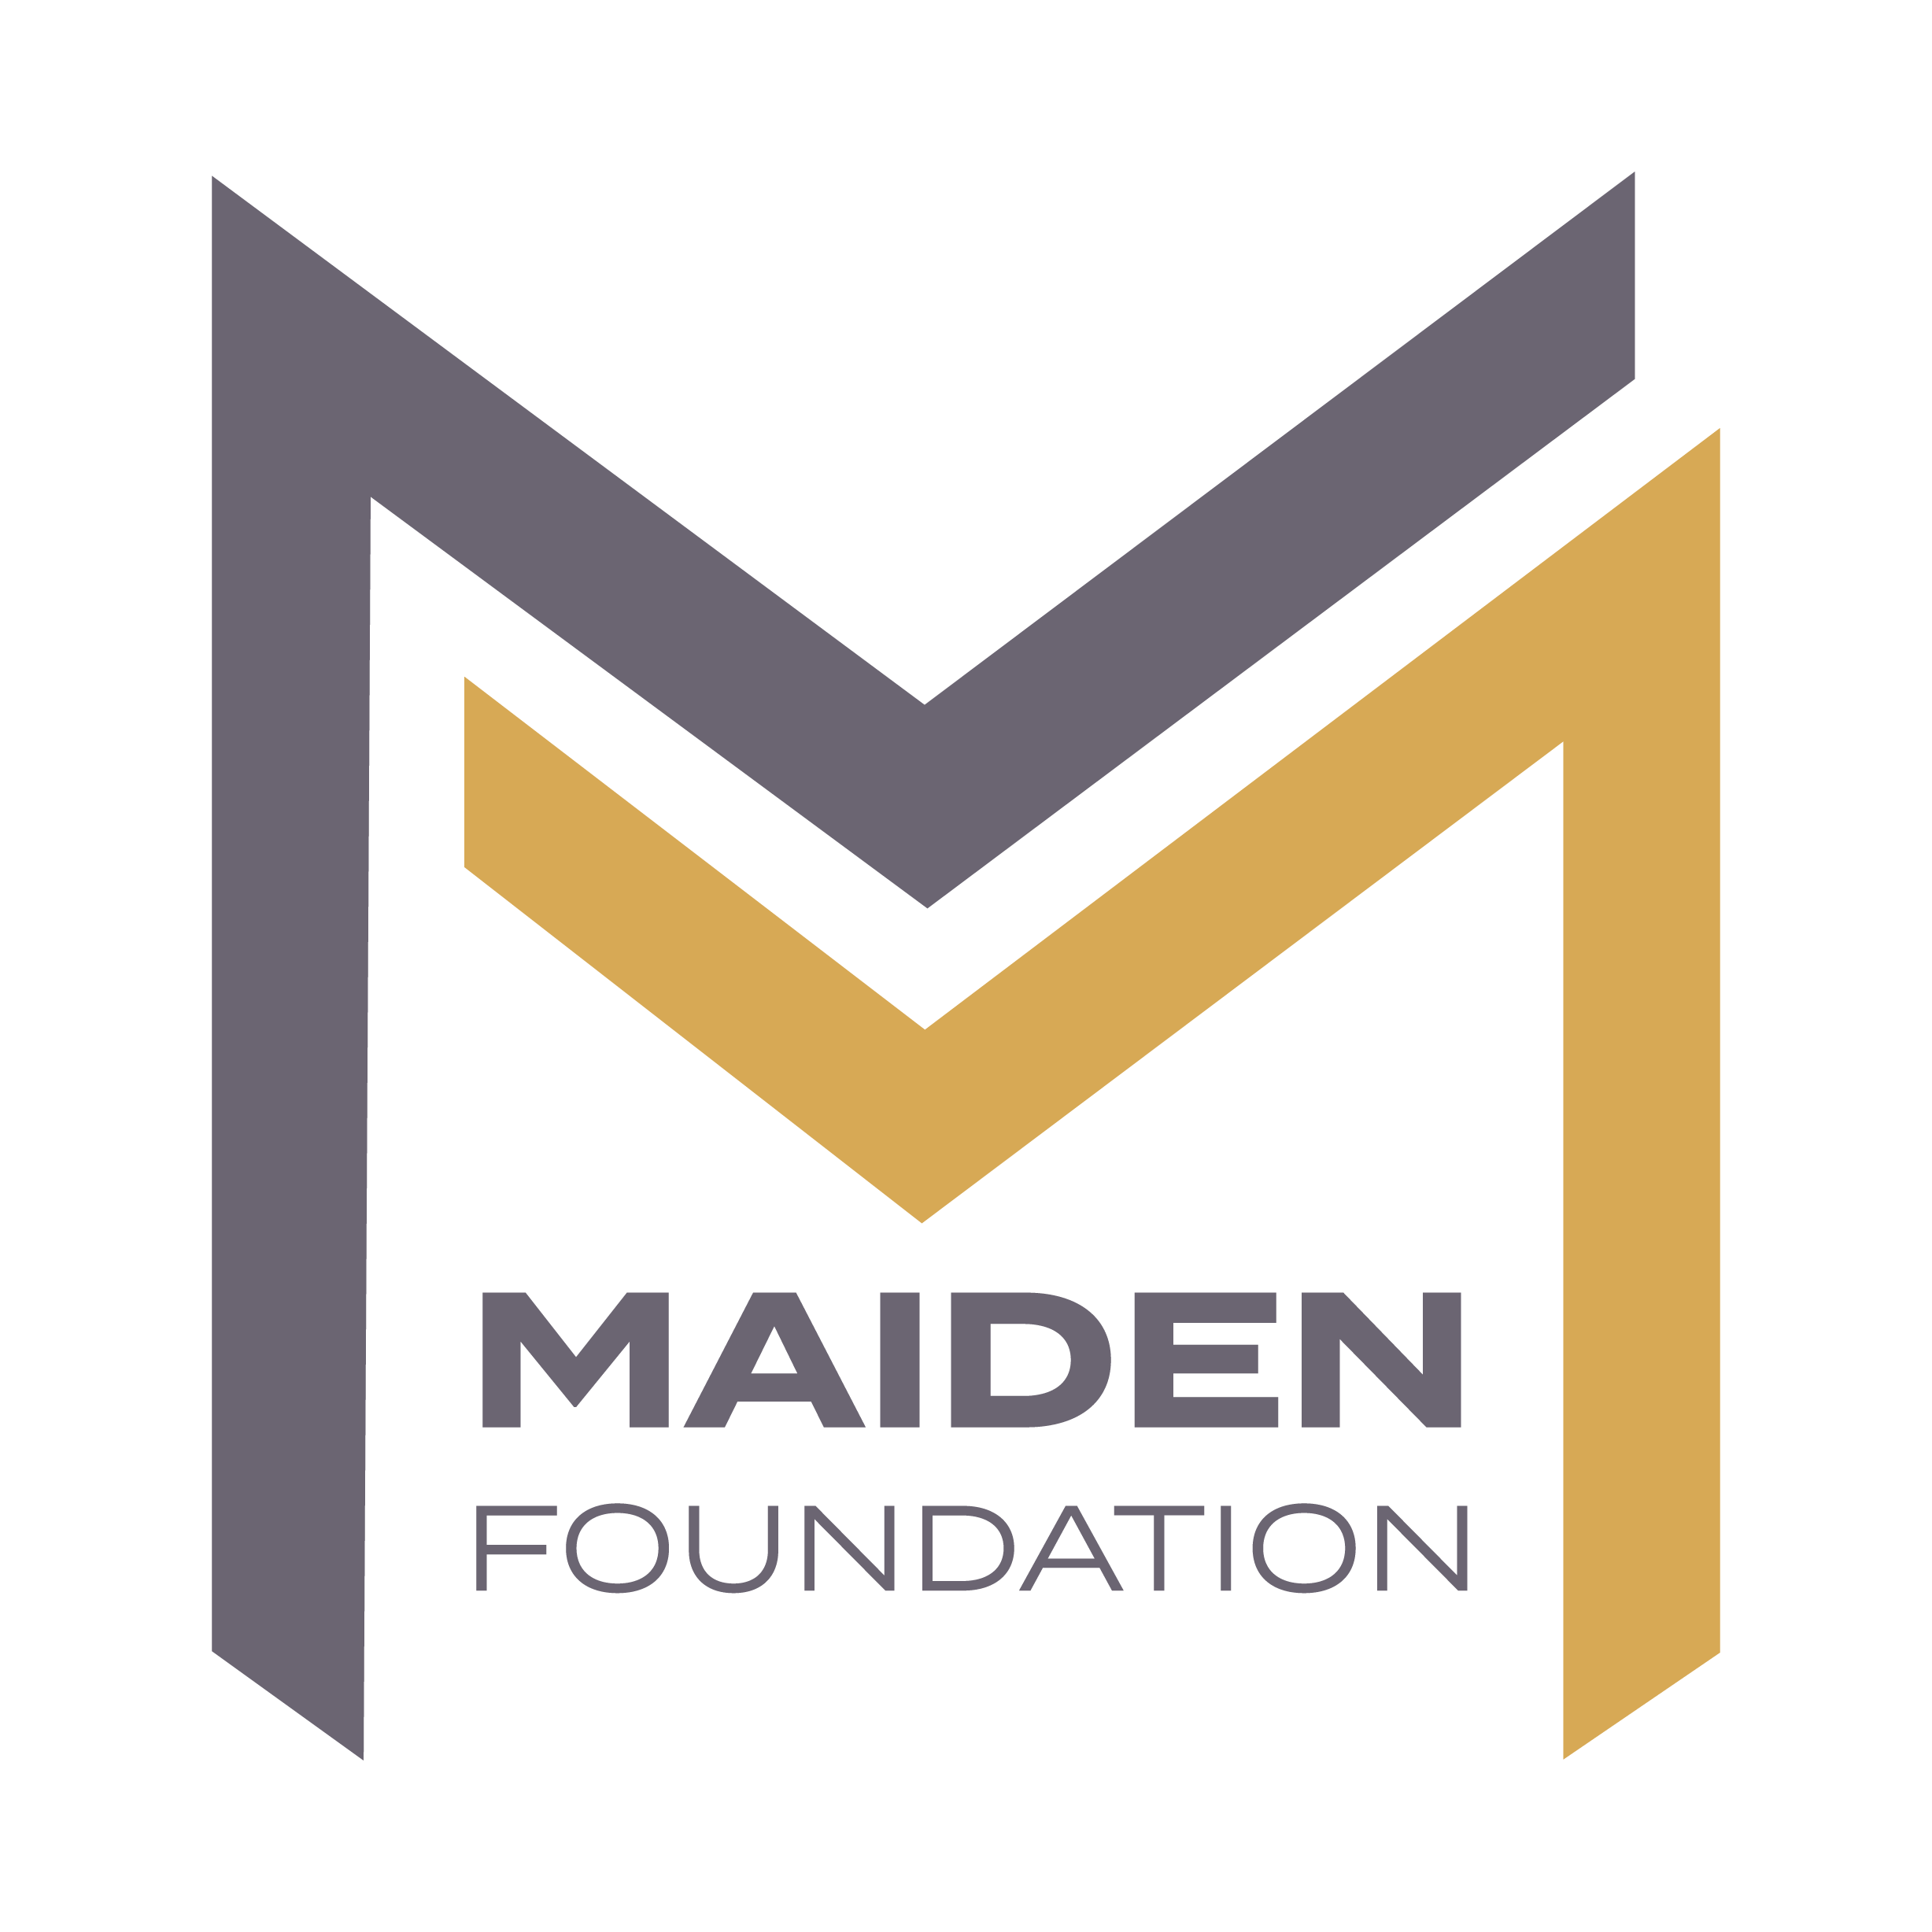 MaidenFoundation StkFull